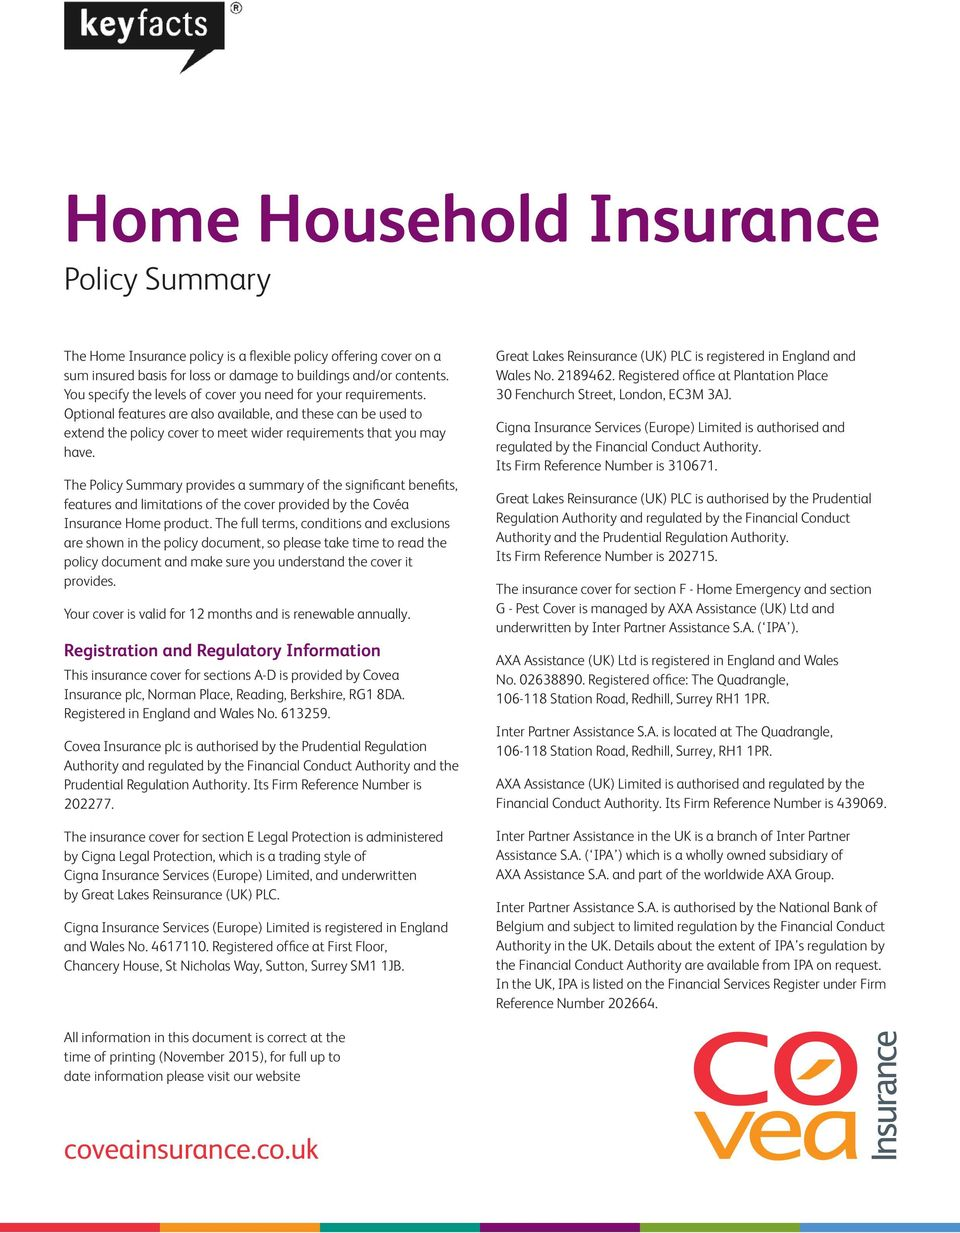 The Policy Summary provides a summary of the significant benefits, features and limitations of the cover provided by the Covéa Insurance Home product.